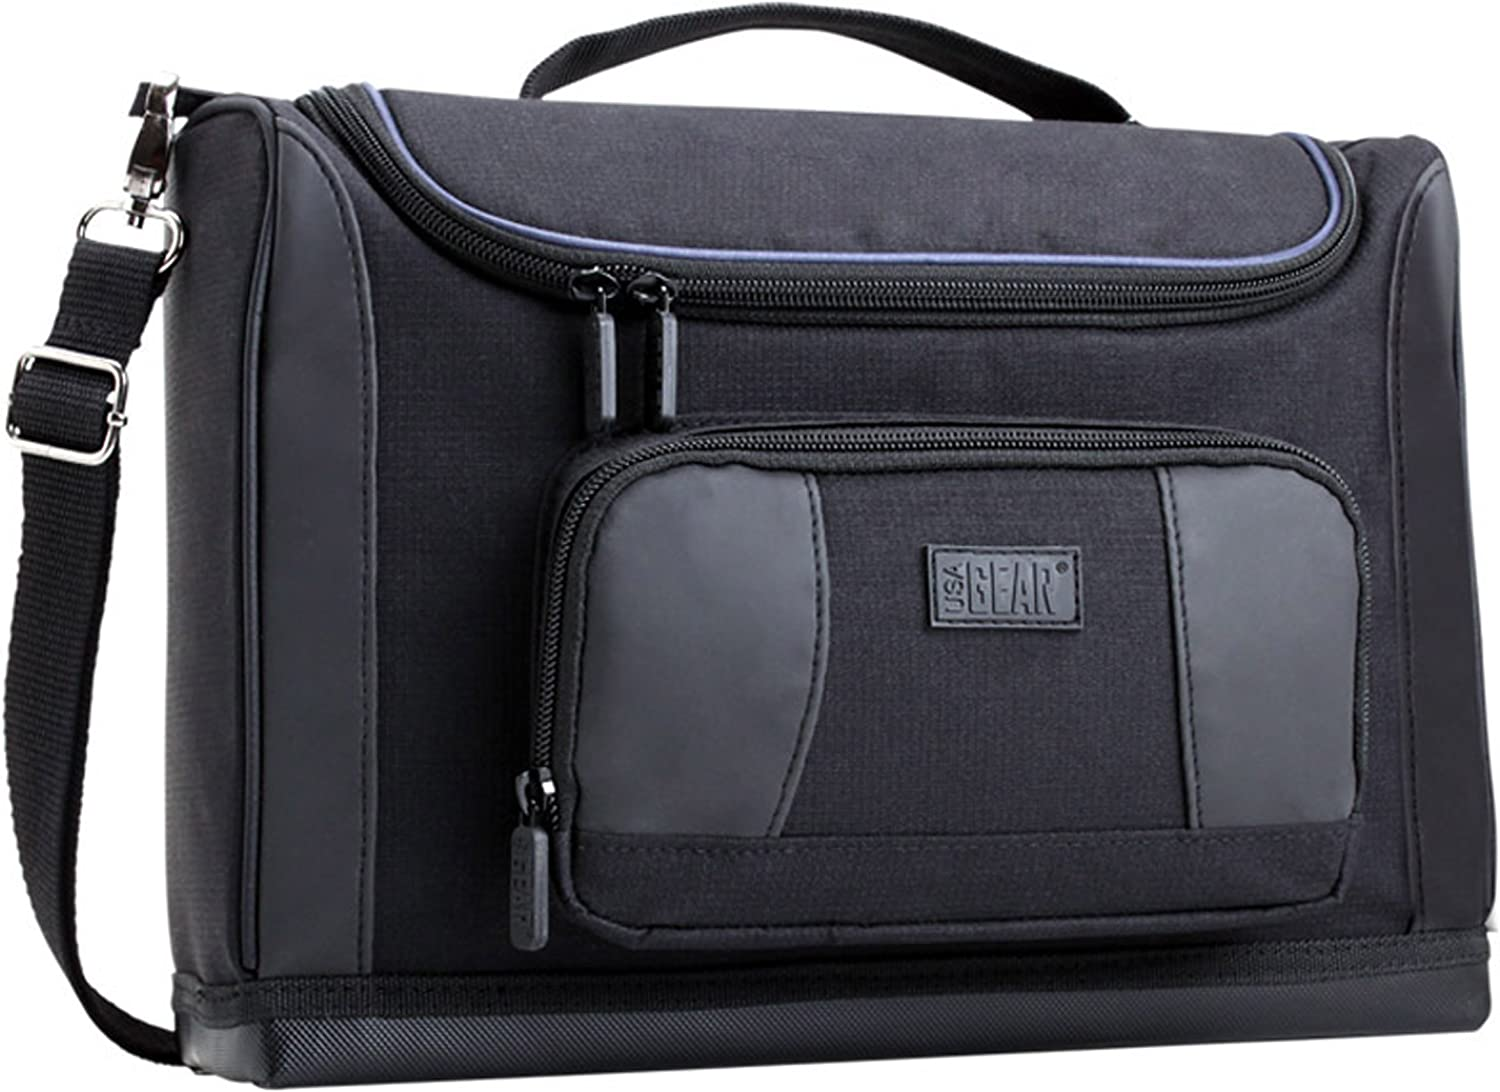 """USA GEAR Compact Travel Bag Case Compatible with Dell Inspiron 11 3000 11"""" 2-in-1, Acer Chromebook R11 11.6"""", RCA Galileo Pro 11.5"""", Lenovo Chromebook C330 11.6"""" - Customizable and Protective Interior"""